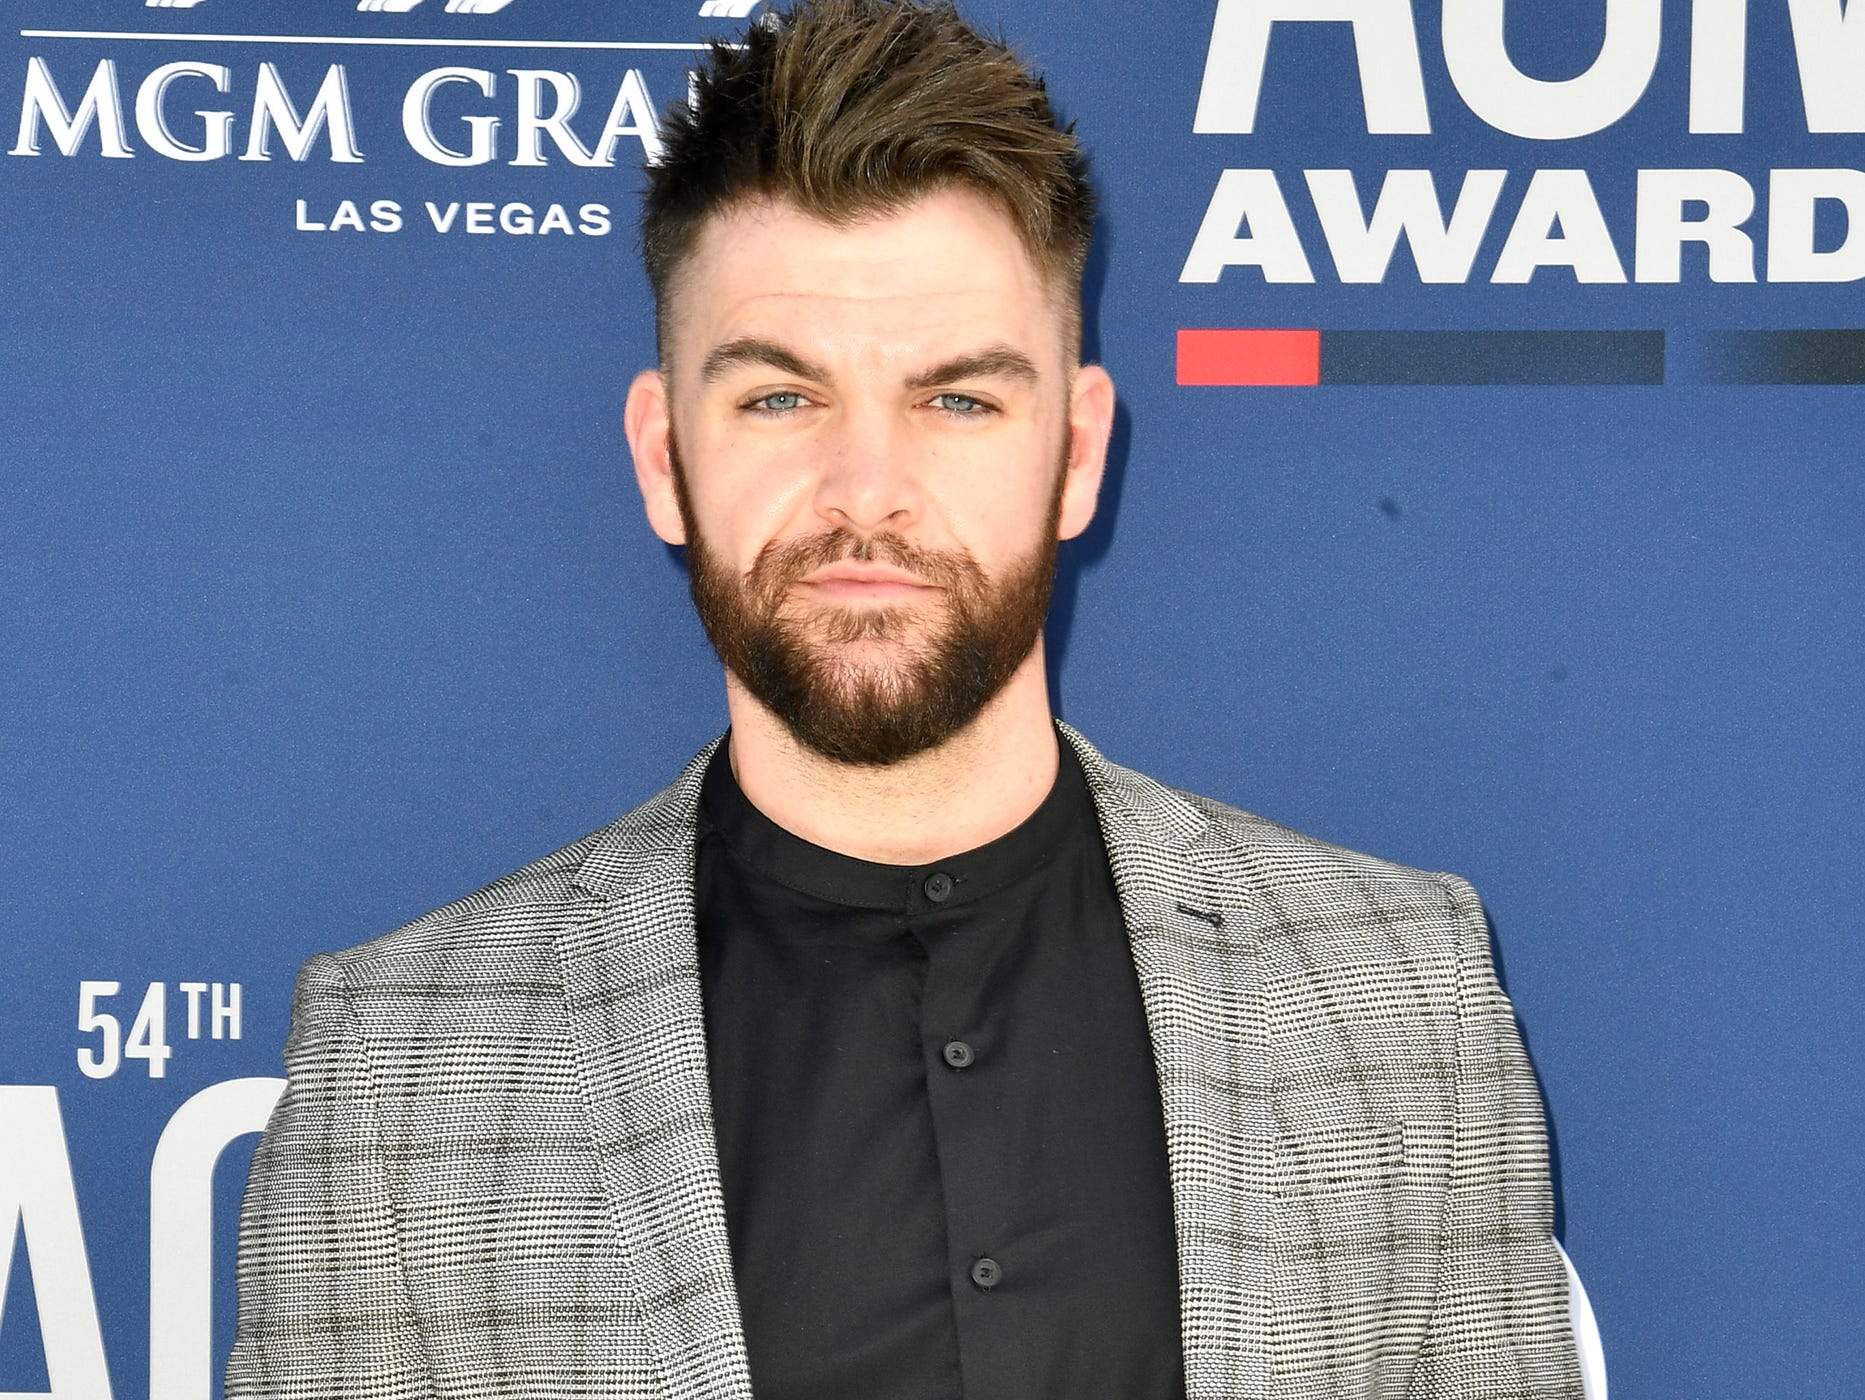 Dylan Scott walks the red carpet at the 54TH Academy of Country Music Awards Sunday, April 7, 2019, in Las Vegas, Nev.